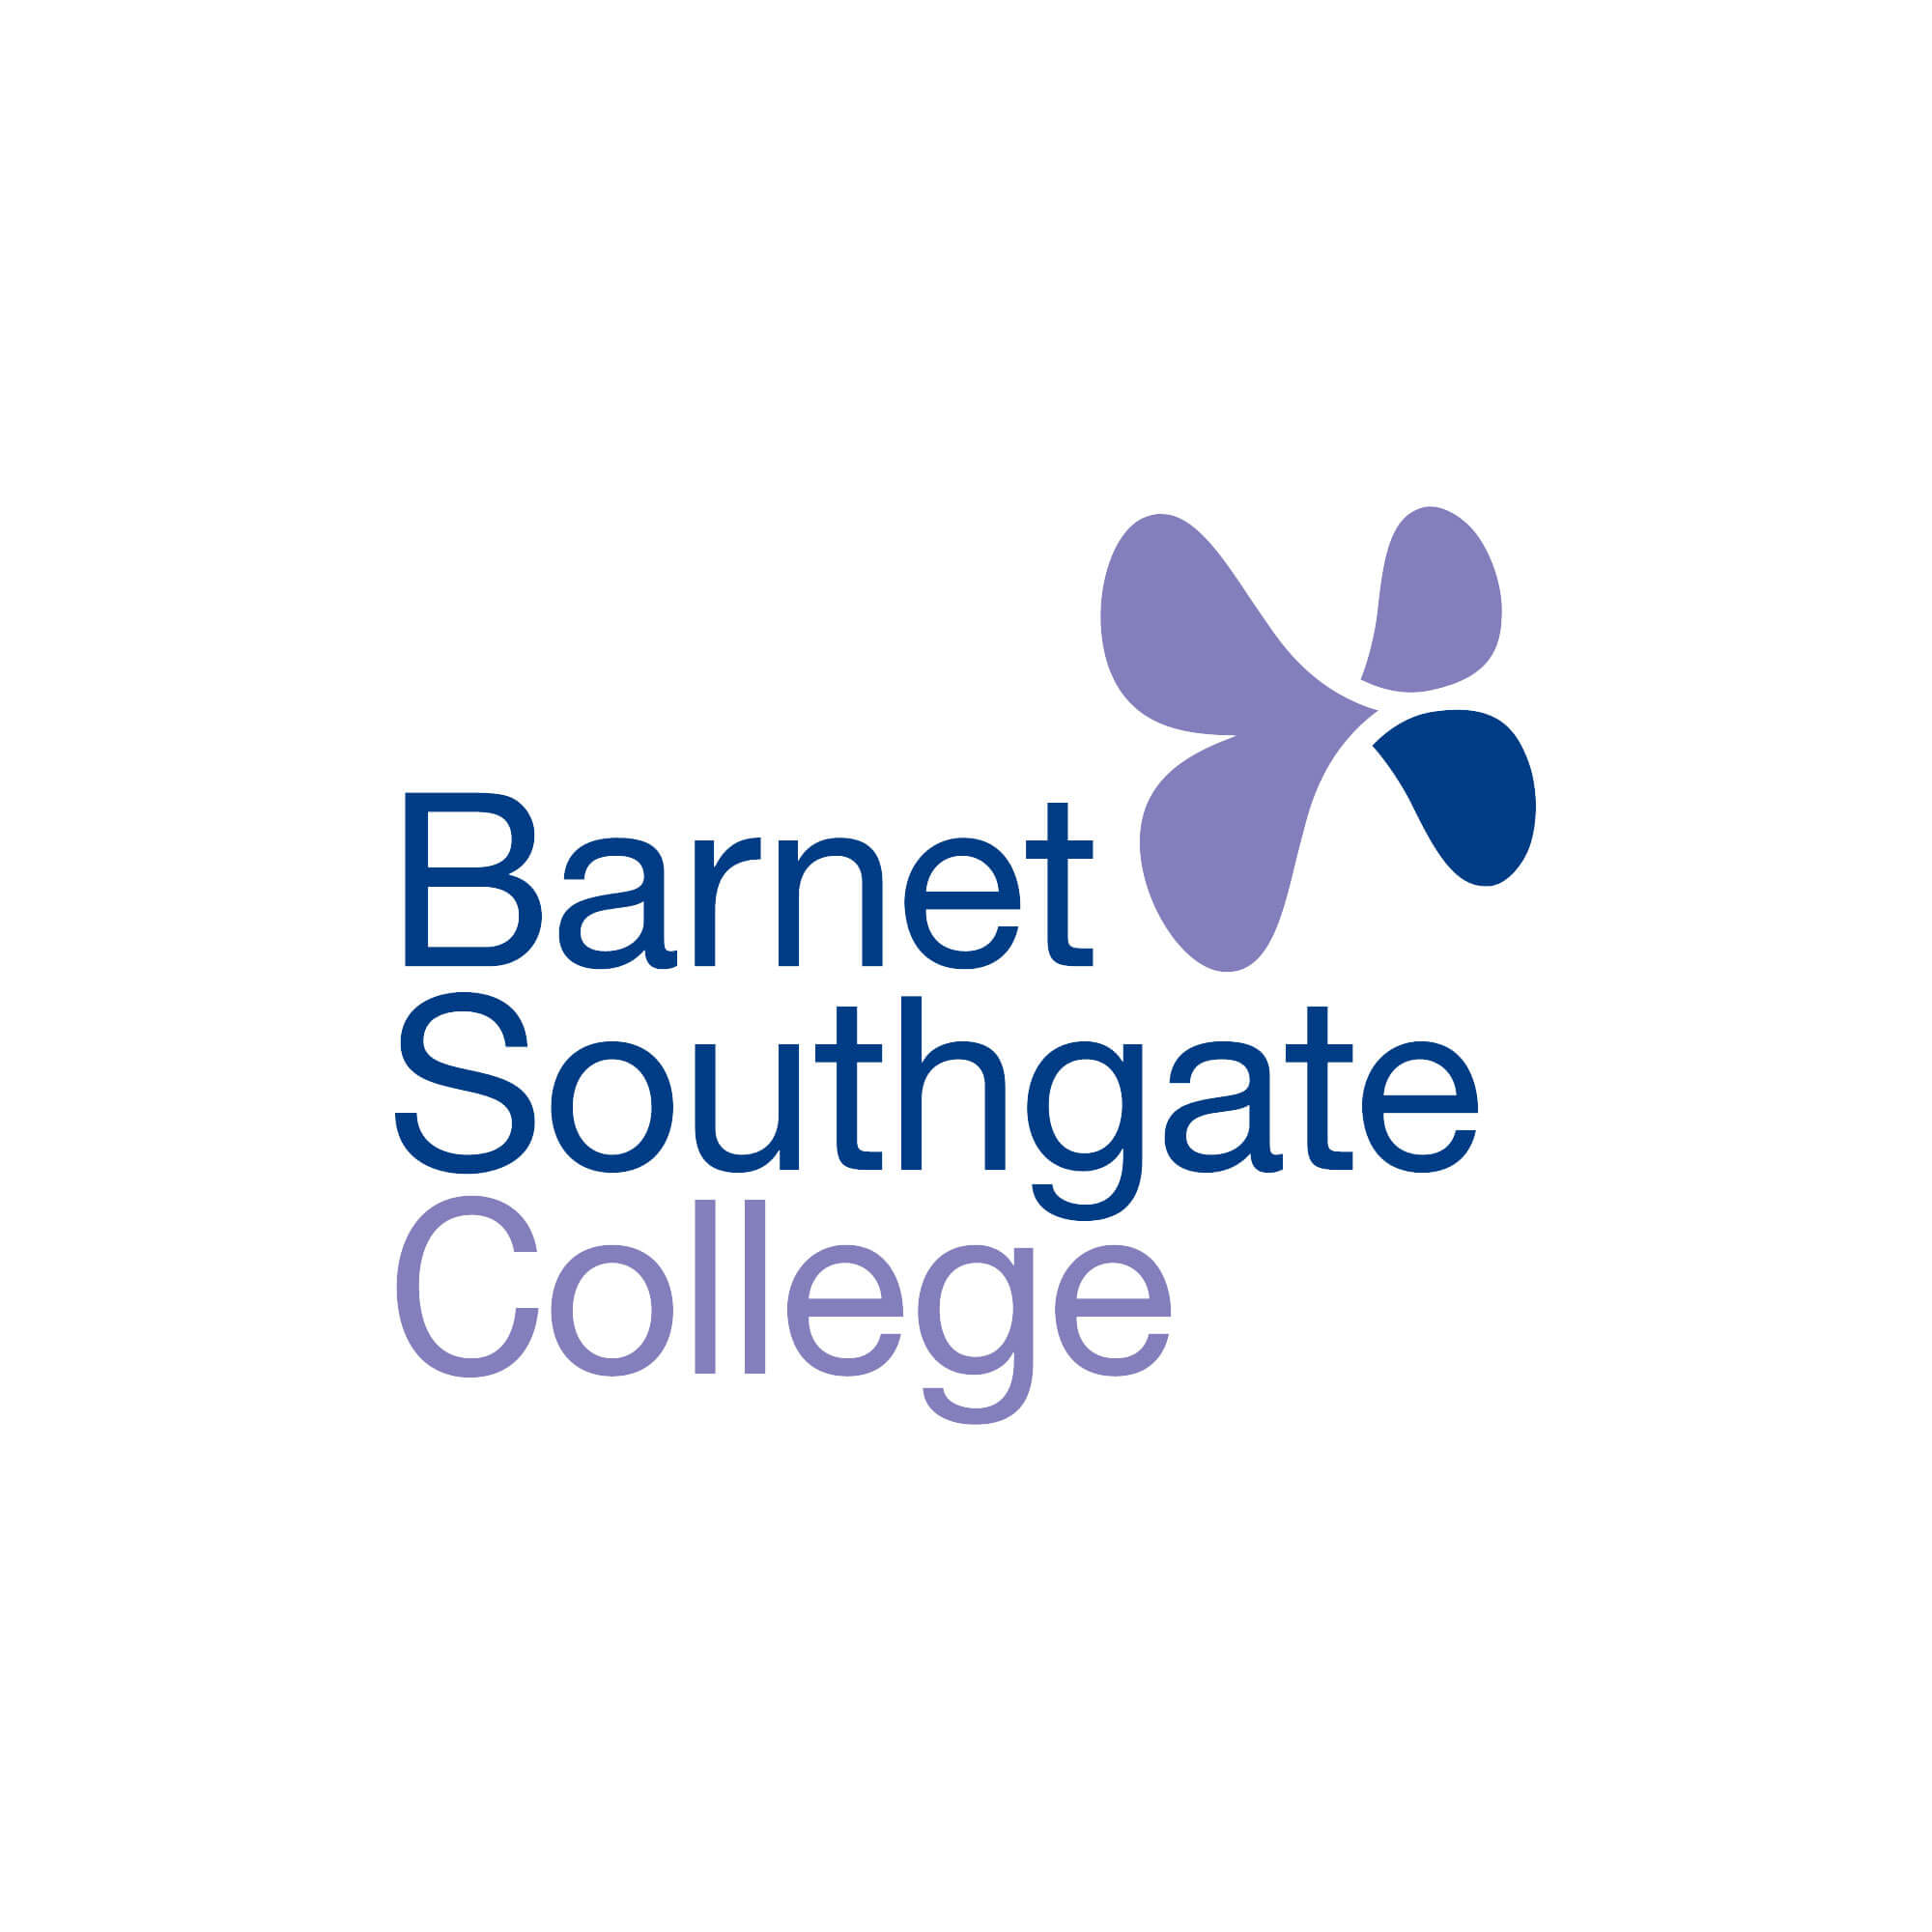 college logo, blue and purple text with a butterfly